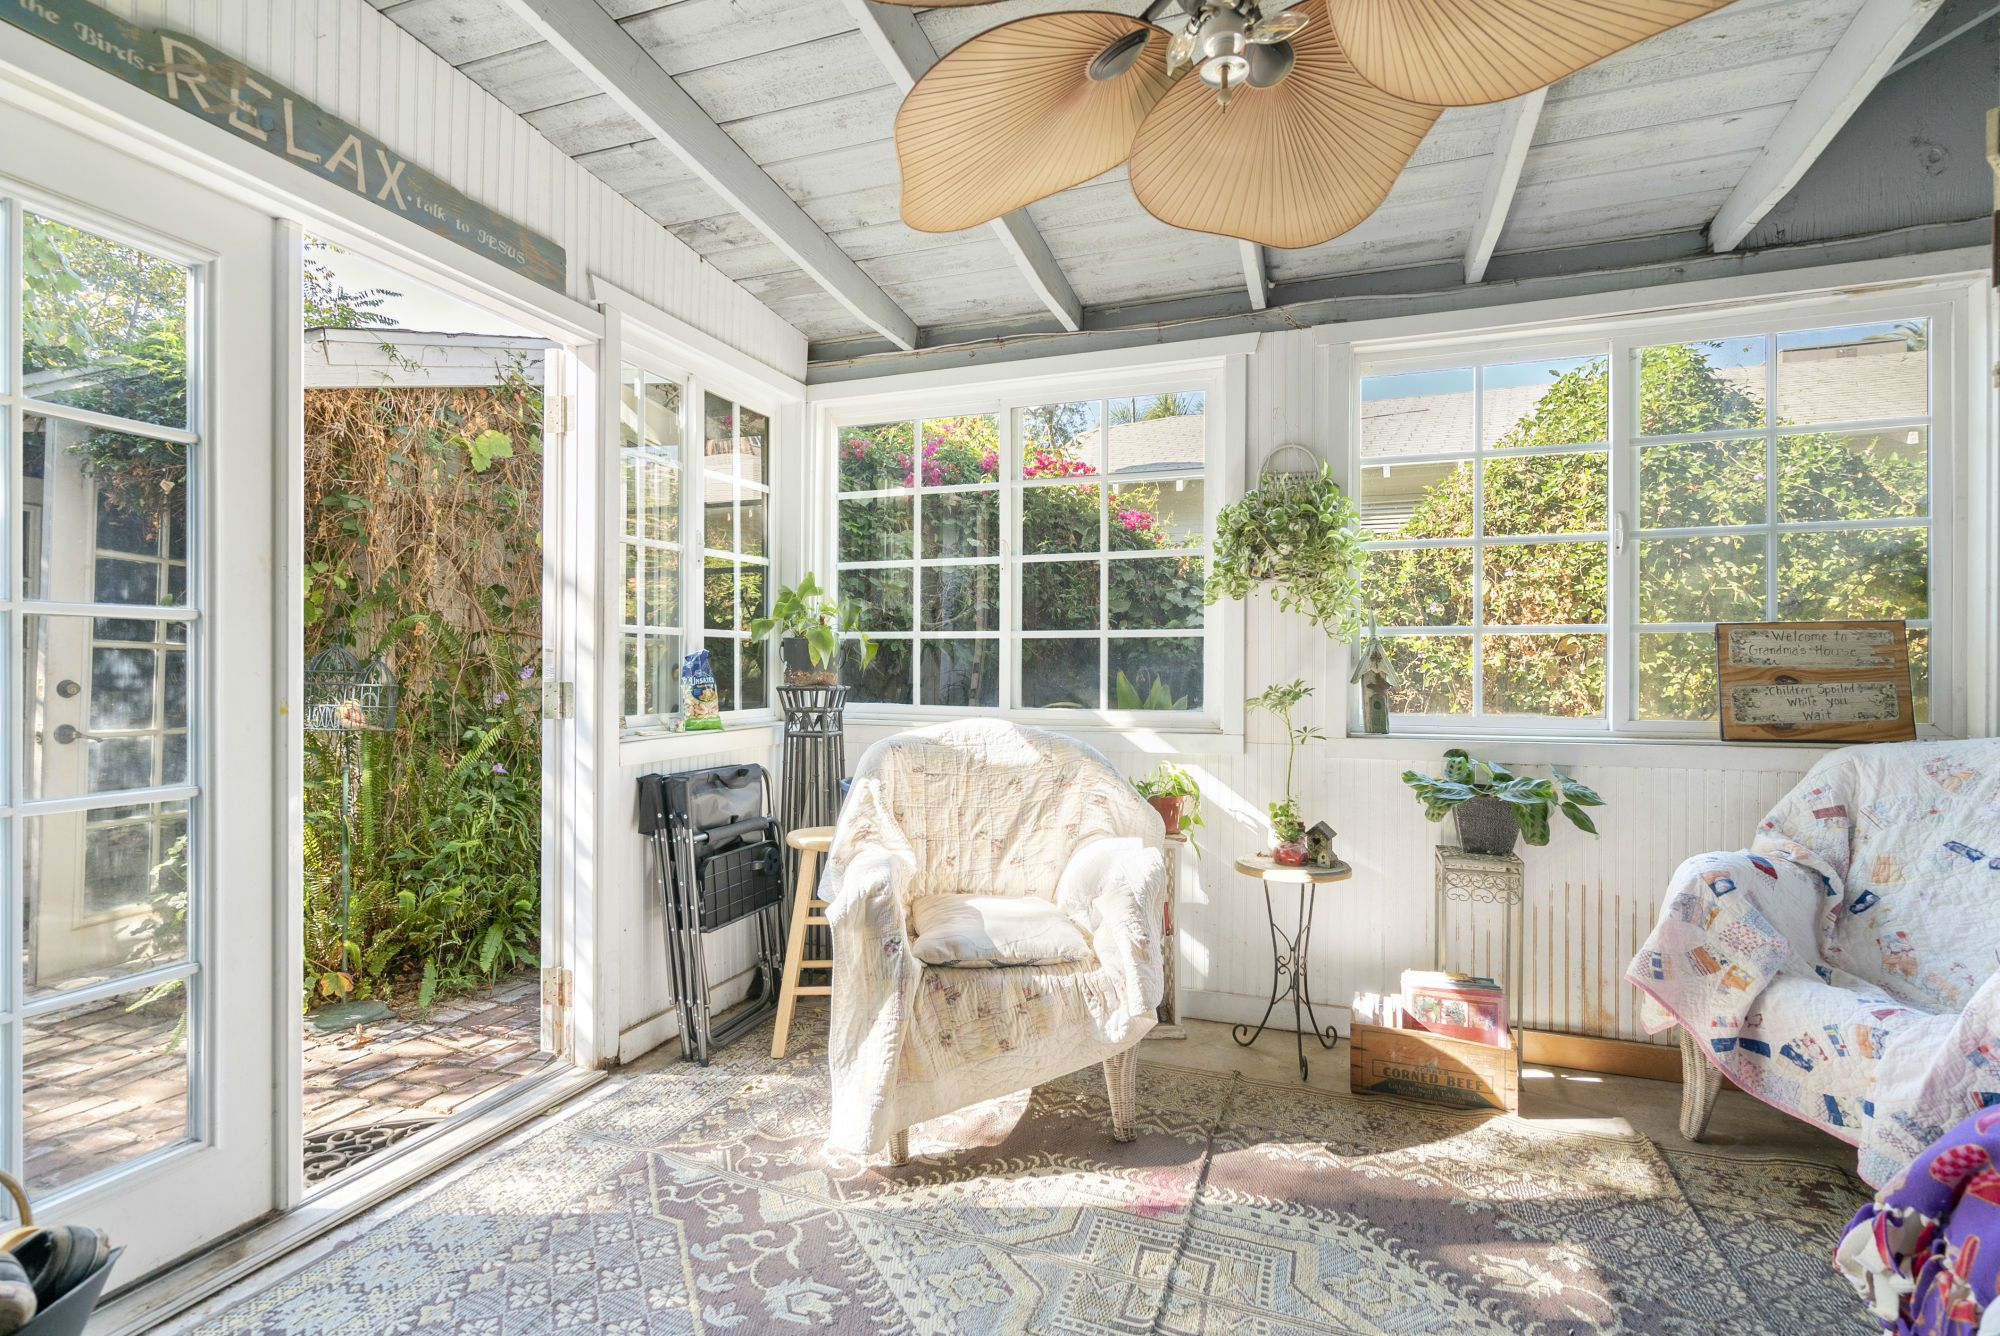 View of step-down sun room entered via the kitchen, with double pane windows and French doors leading to the back yard.